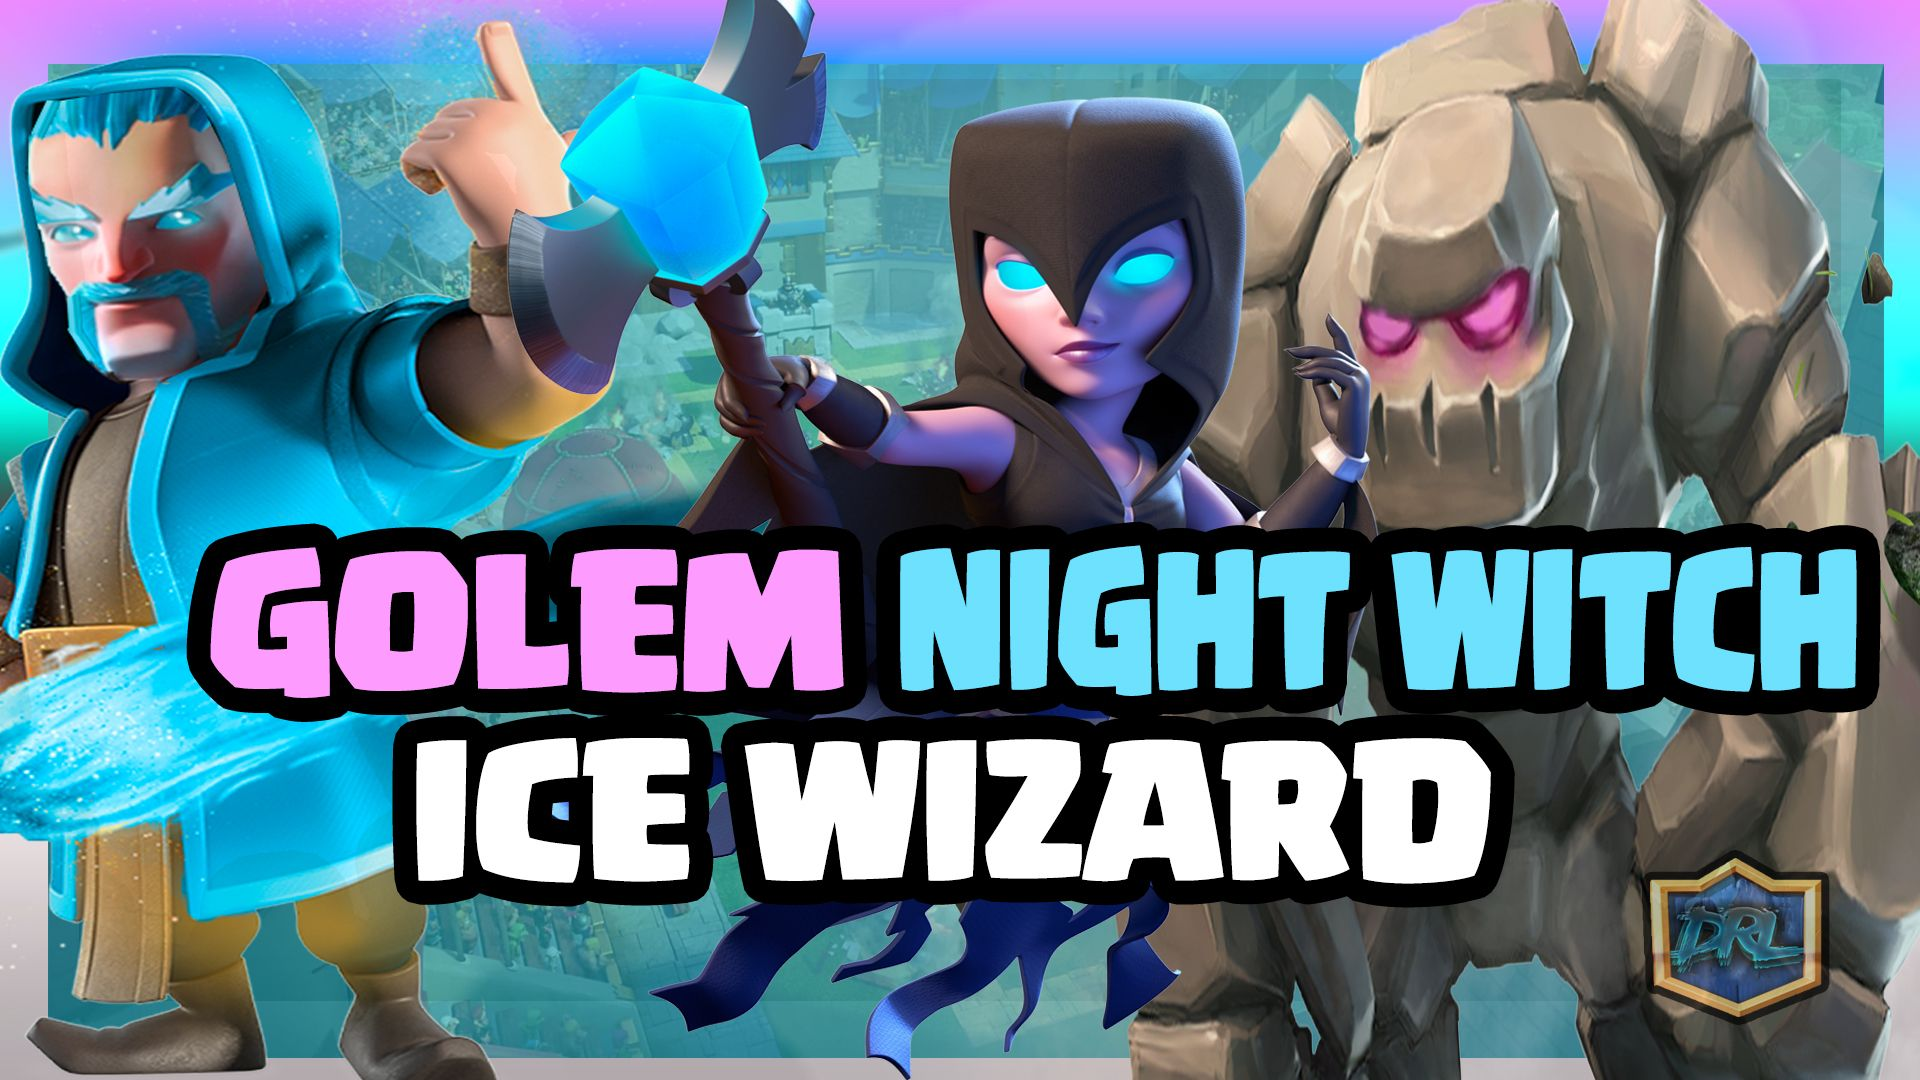 In This Episode Of Clash Royale Everything We Discuss A Deck For The October Balance Changes Which Is Golem Night Witch Ice Wizard